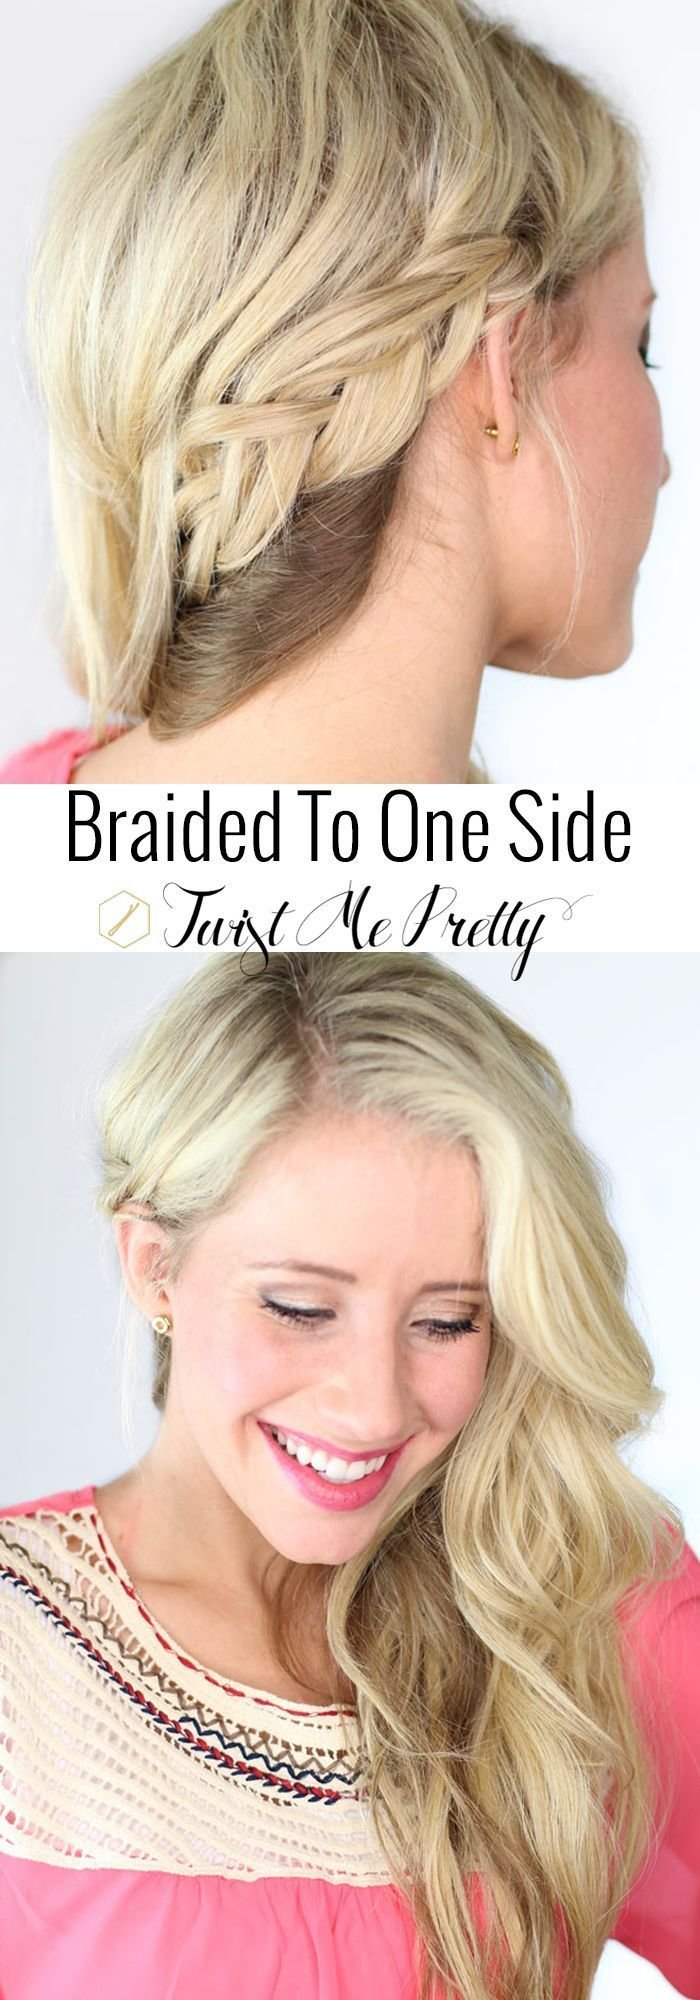 New 1000 Ideas About One Sided Braid On Pinterest Hair Styles For Prom Grad Hairstyles And Ideas With Pictures